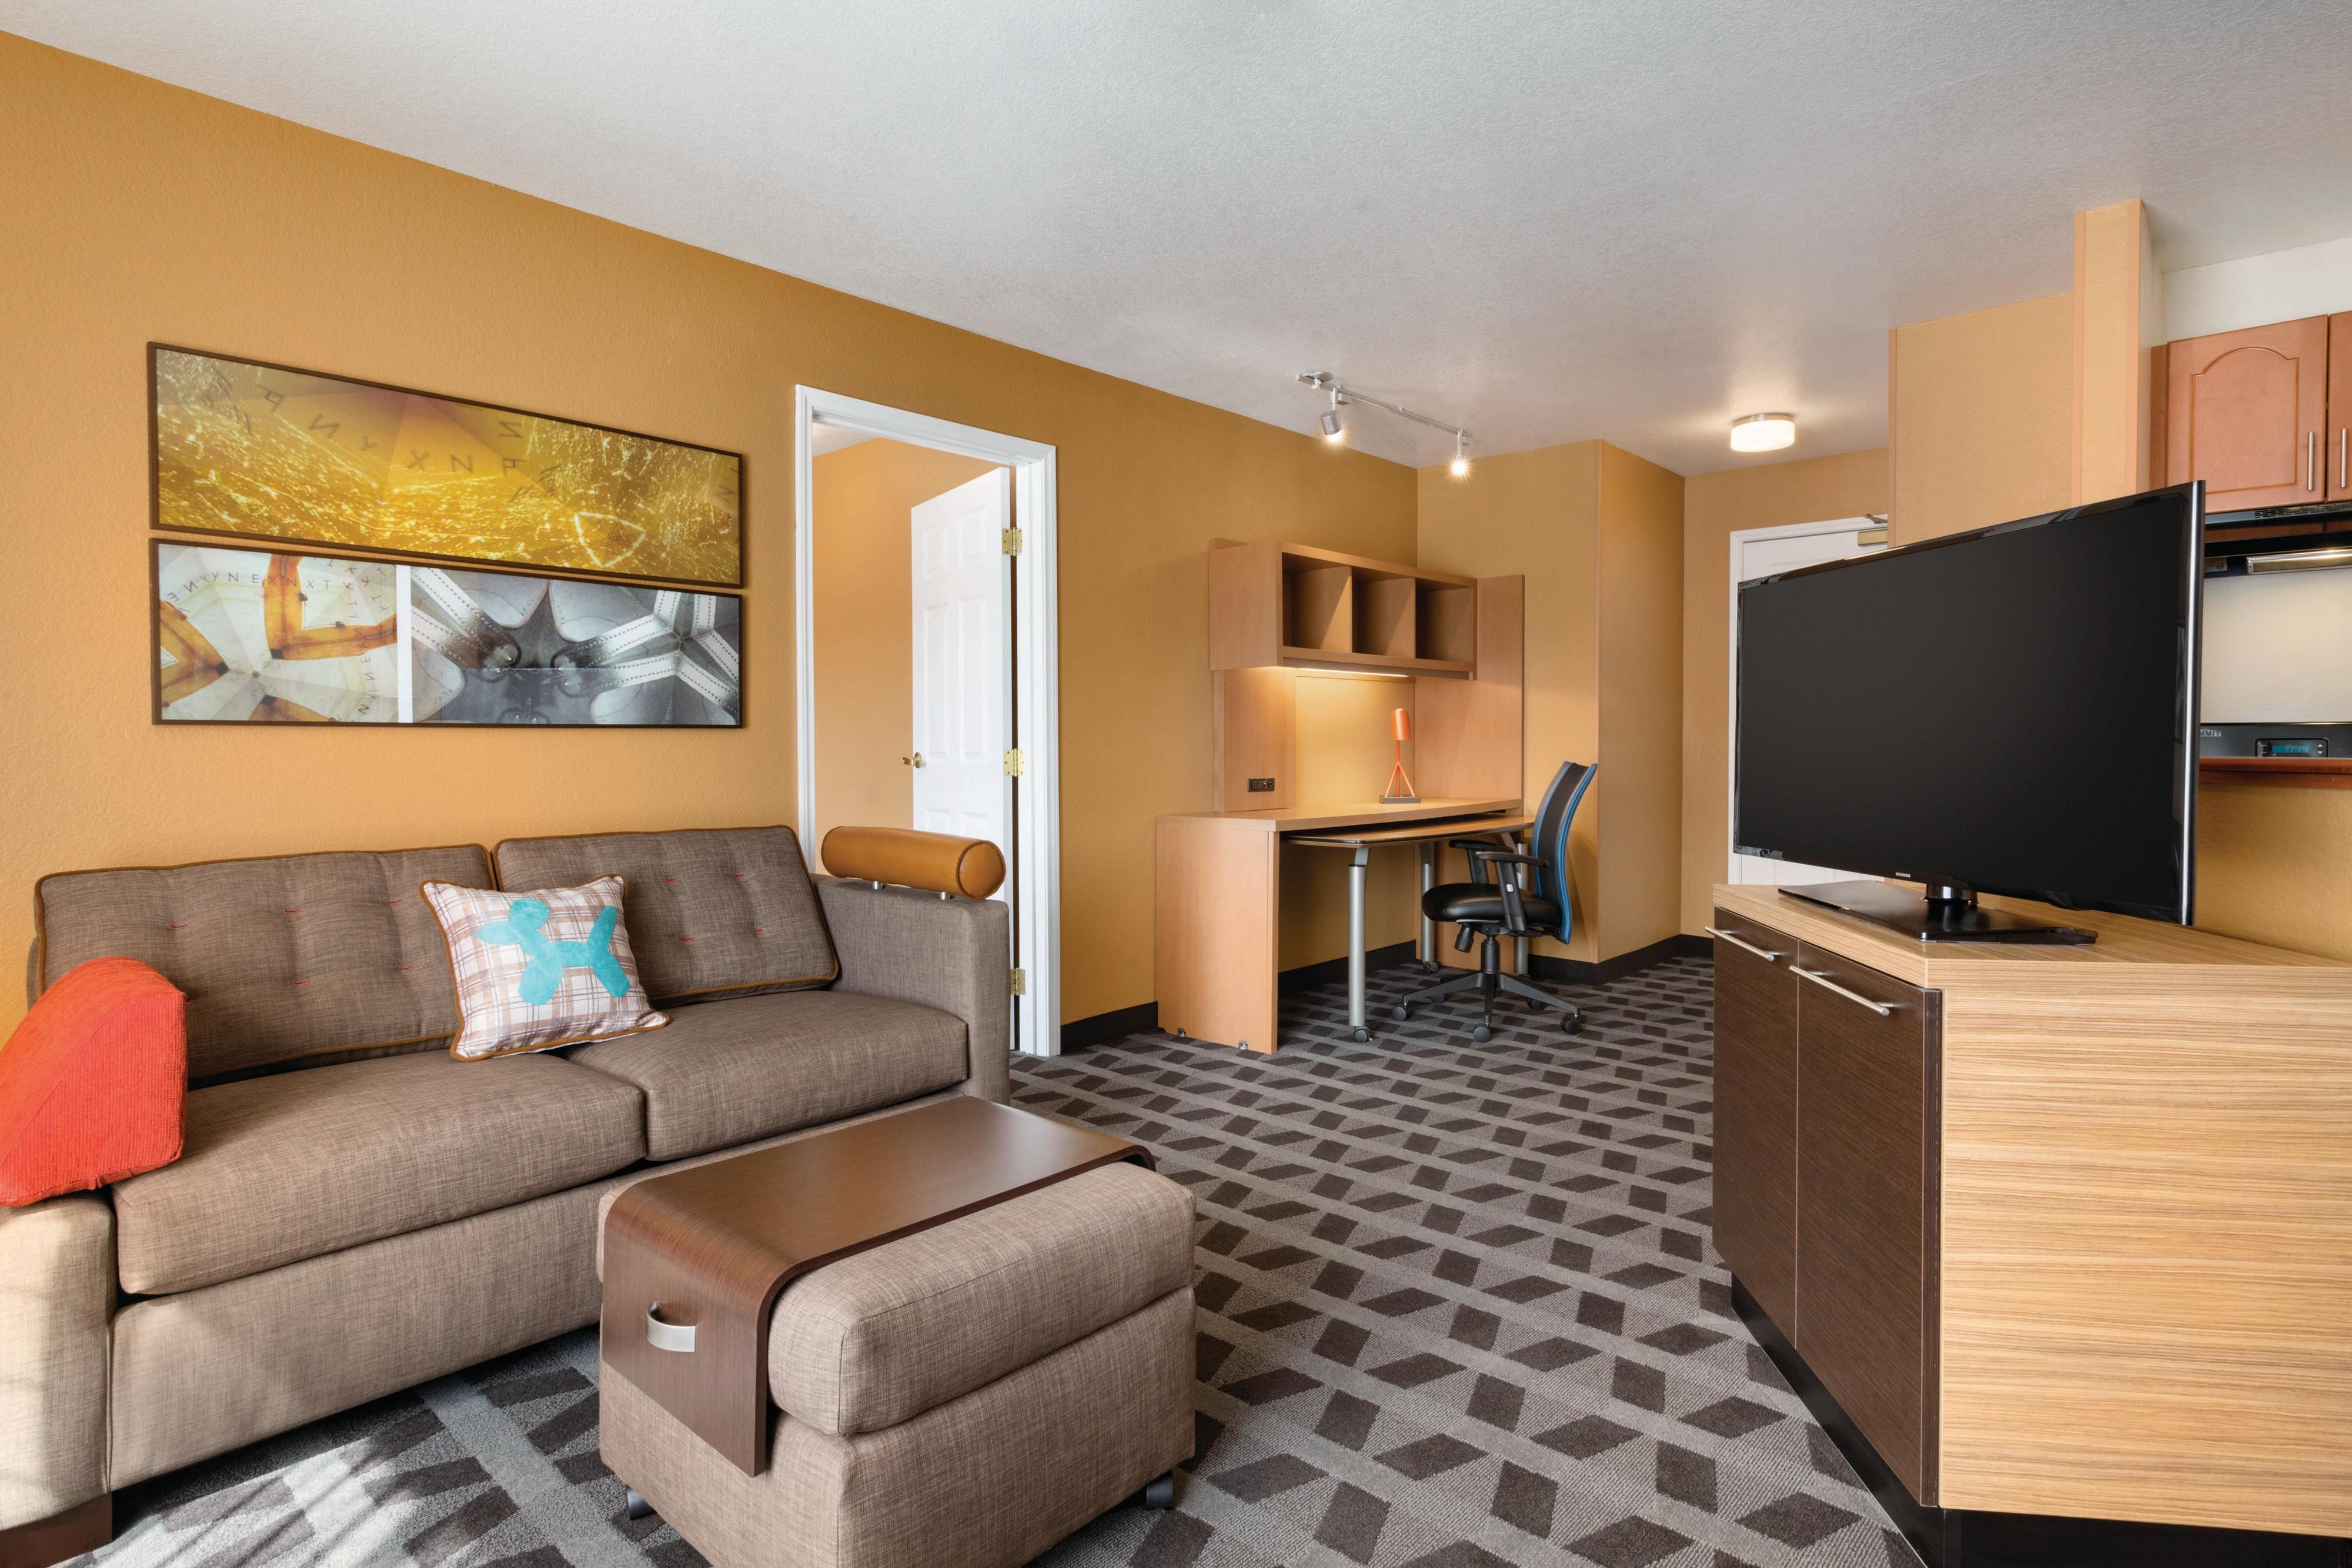 Check out our modern Denver Hotel Suites